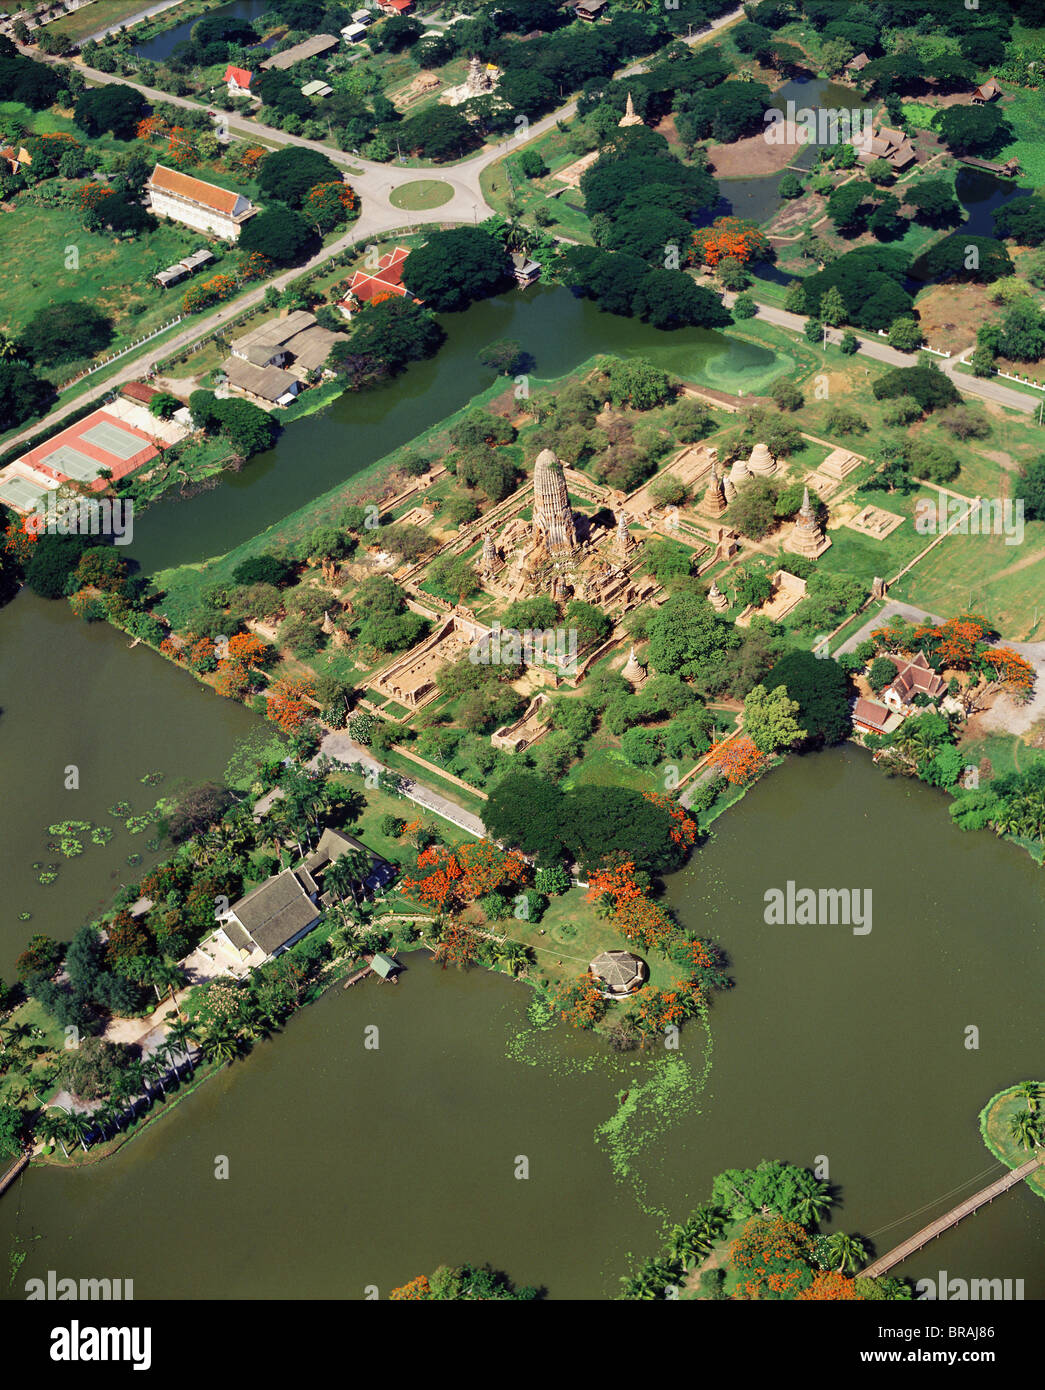 Aerial view of Wat Phra Ram, surrounded by a pond, Ayutthaya, Thailand, Southeast Asia, Asia Stock Photo